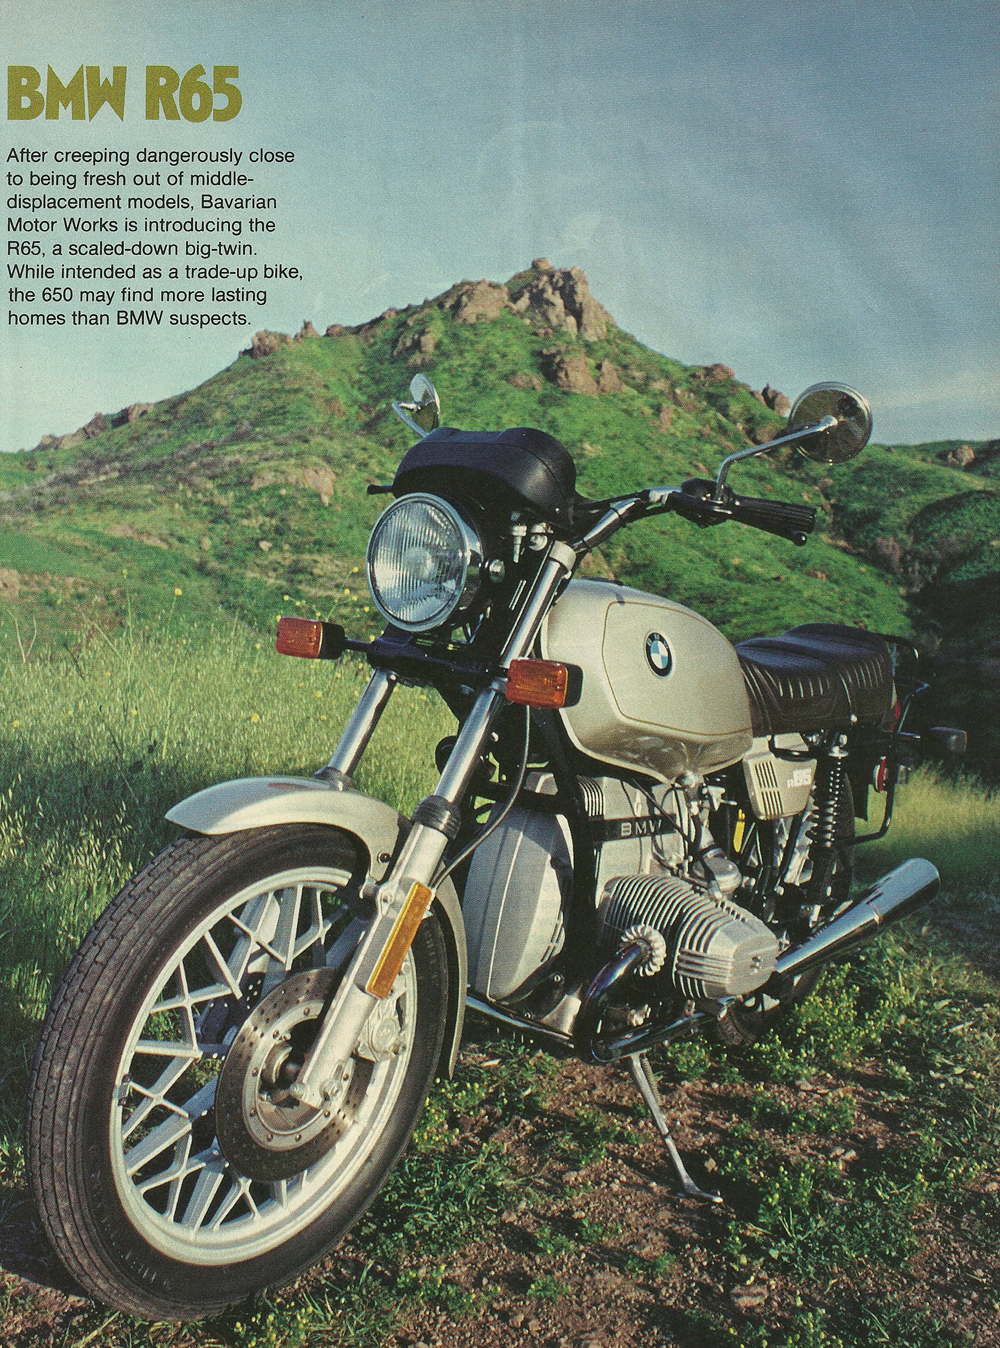 1979 BMW R65 road test 2.jpg